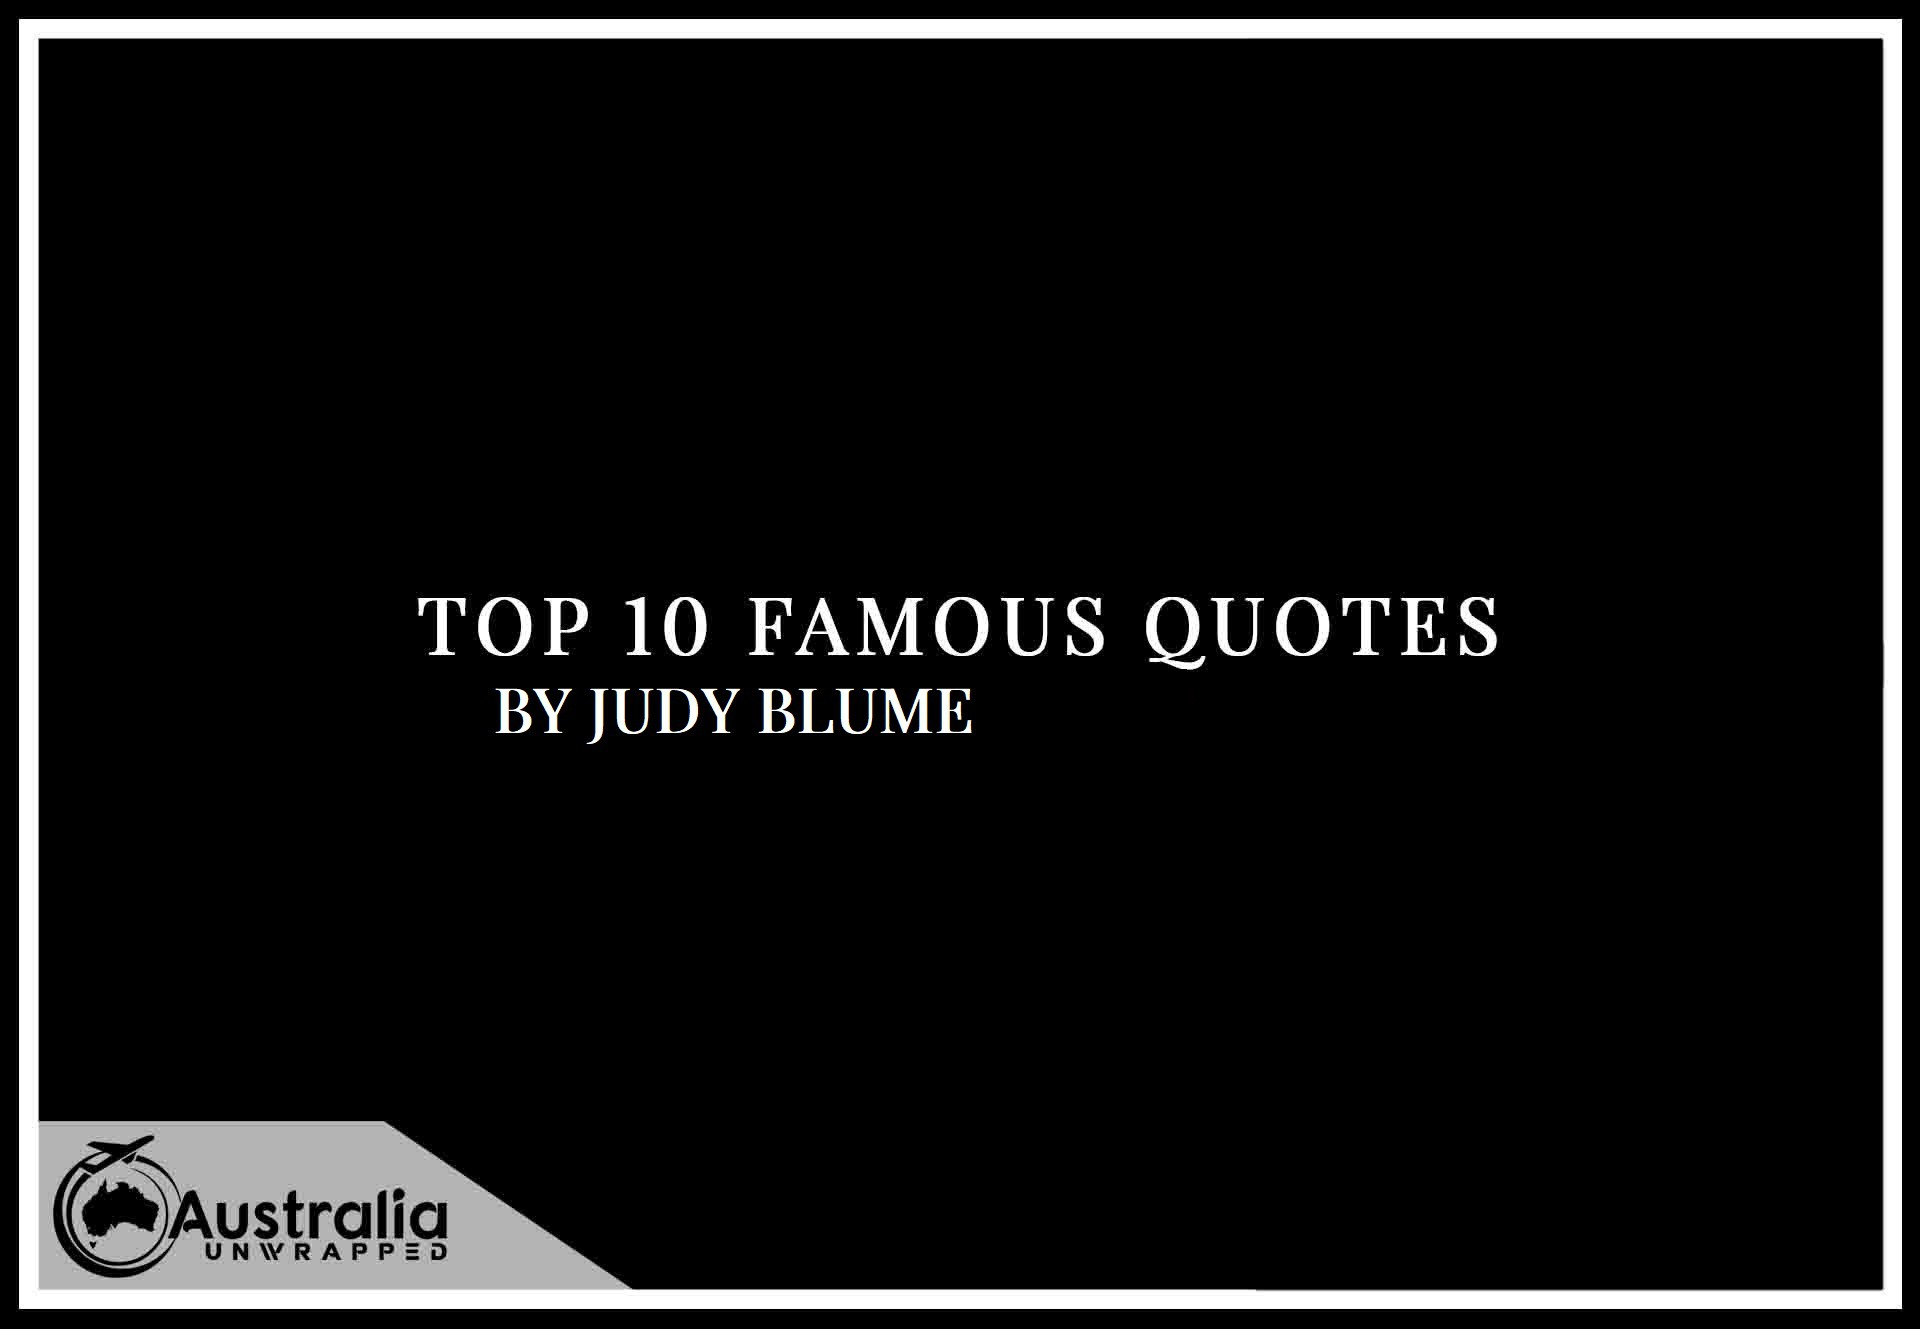 Top 10 Famous Quotes by Author judy blume